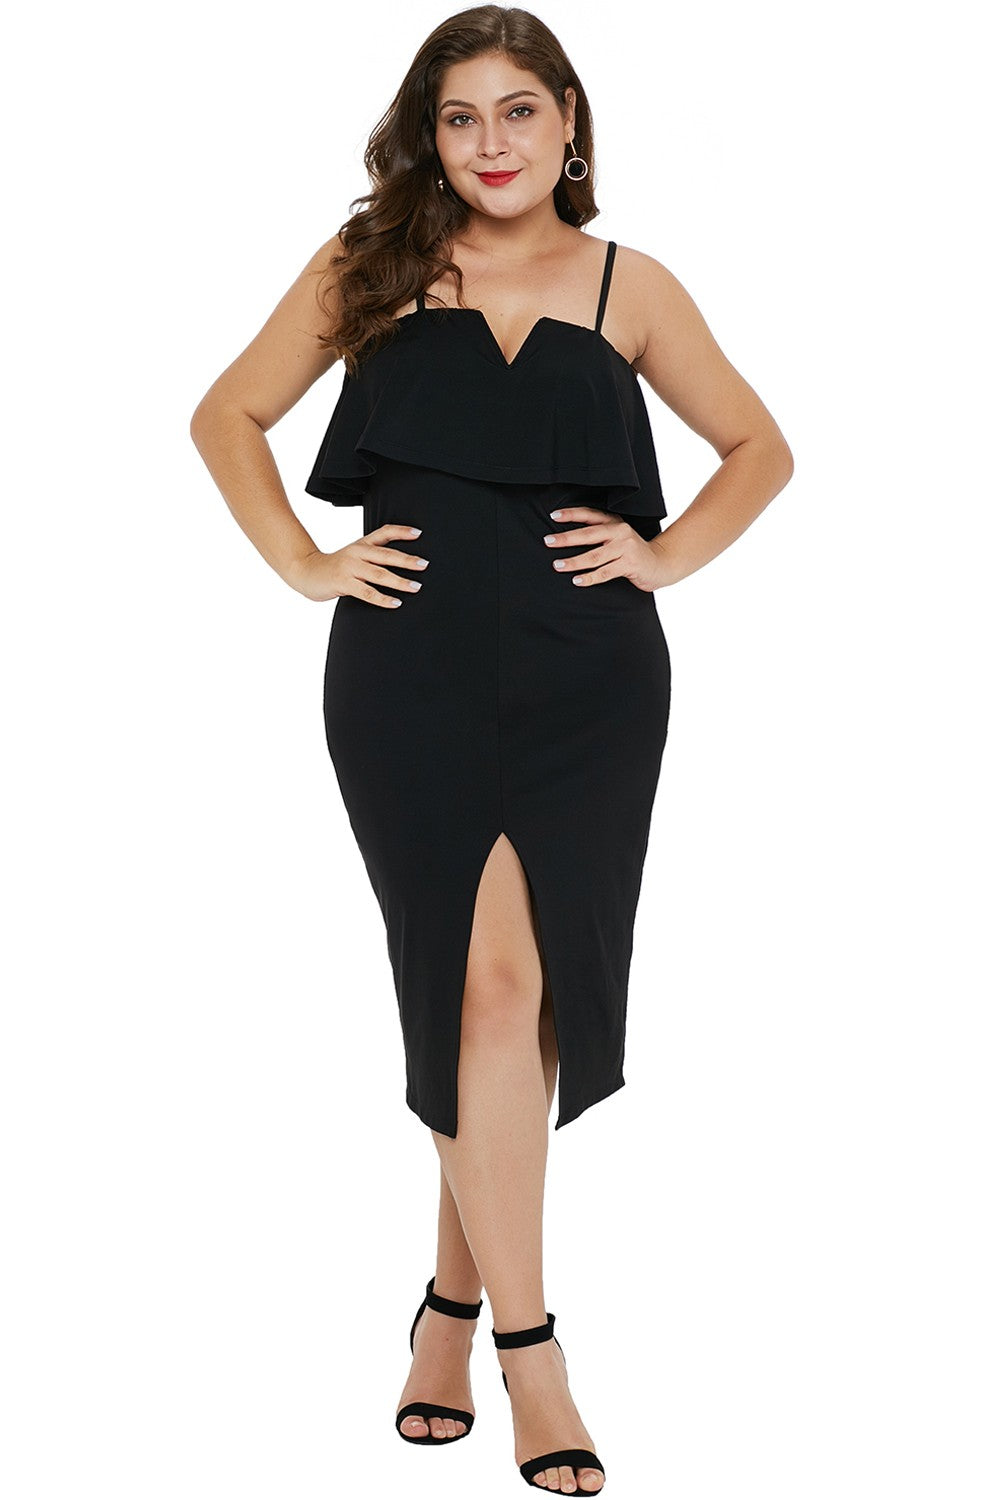 Women, Ruffle Plus Size Dress